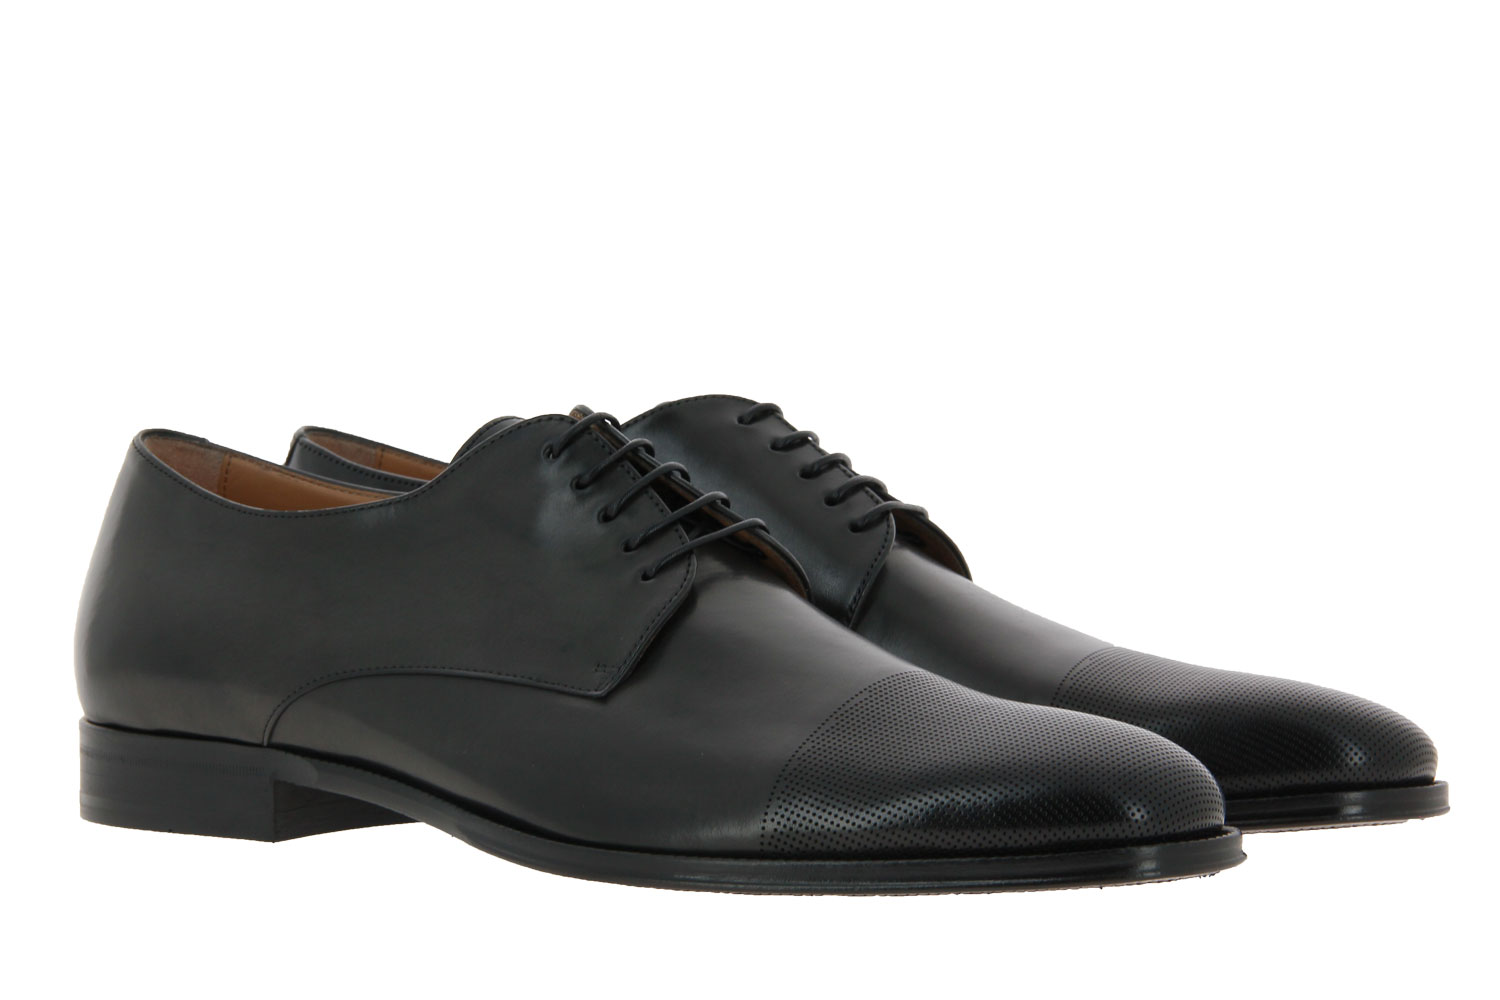 Hugo Boss lace-up CAMBRIDGE DARK GREY